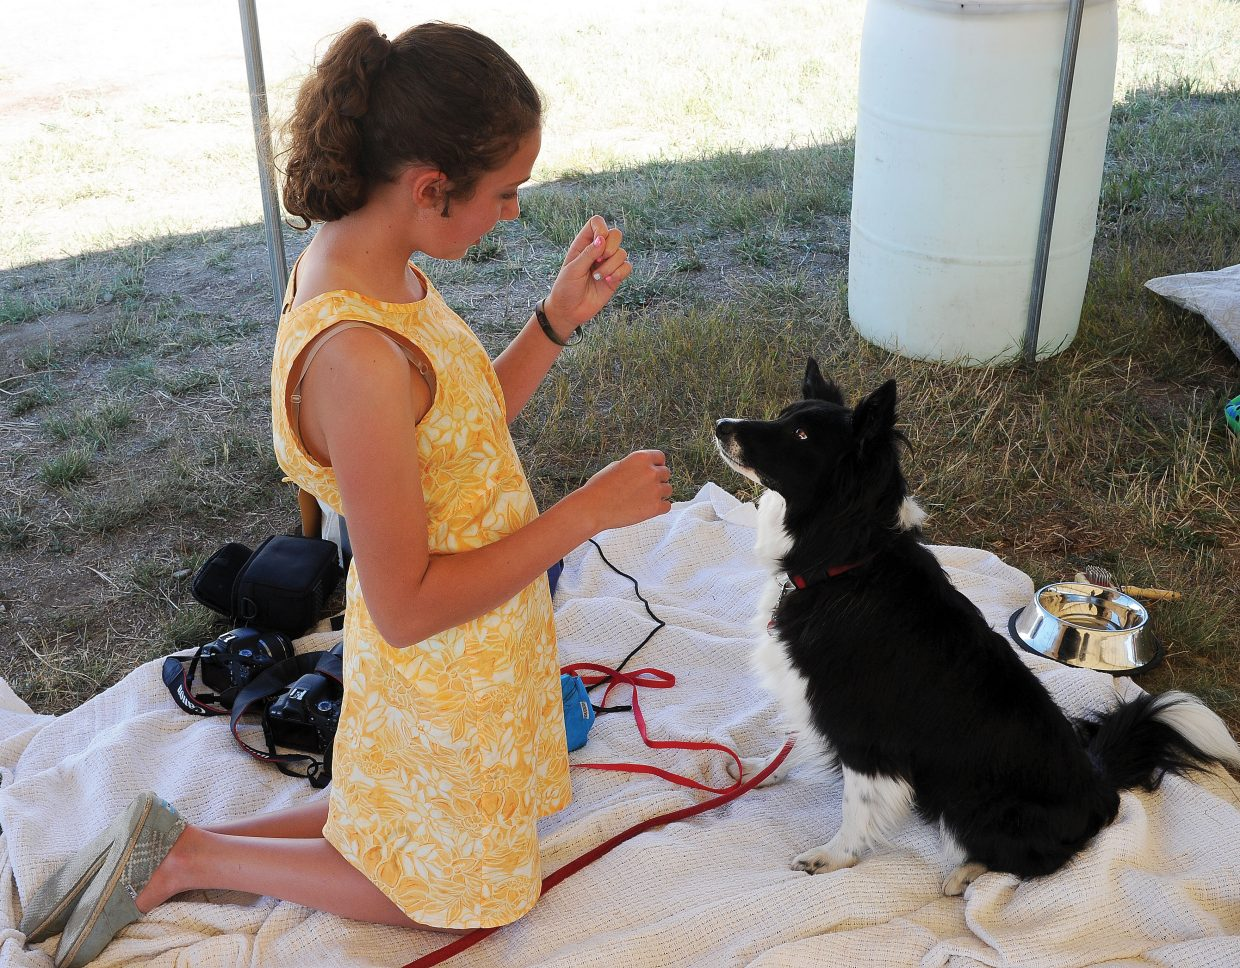 Elise Barbier gives her dog Olive a treat after the showmanship class at the Routt County Fair's dog show Tuesday afternoon. The members of the 4-H dog program have been working with their dogs all summer, and on Tuesday, they got the chance to compete for ribbons and titles. Or in Olive's case, treats.